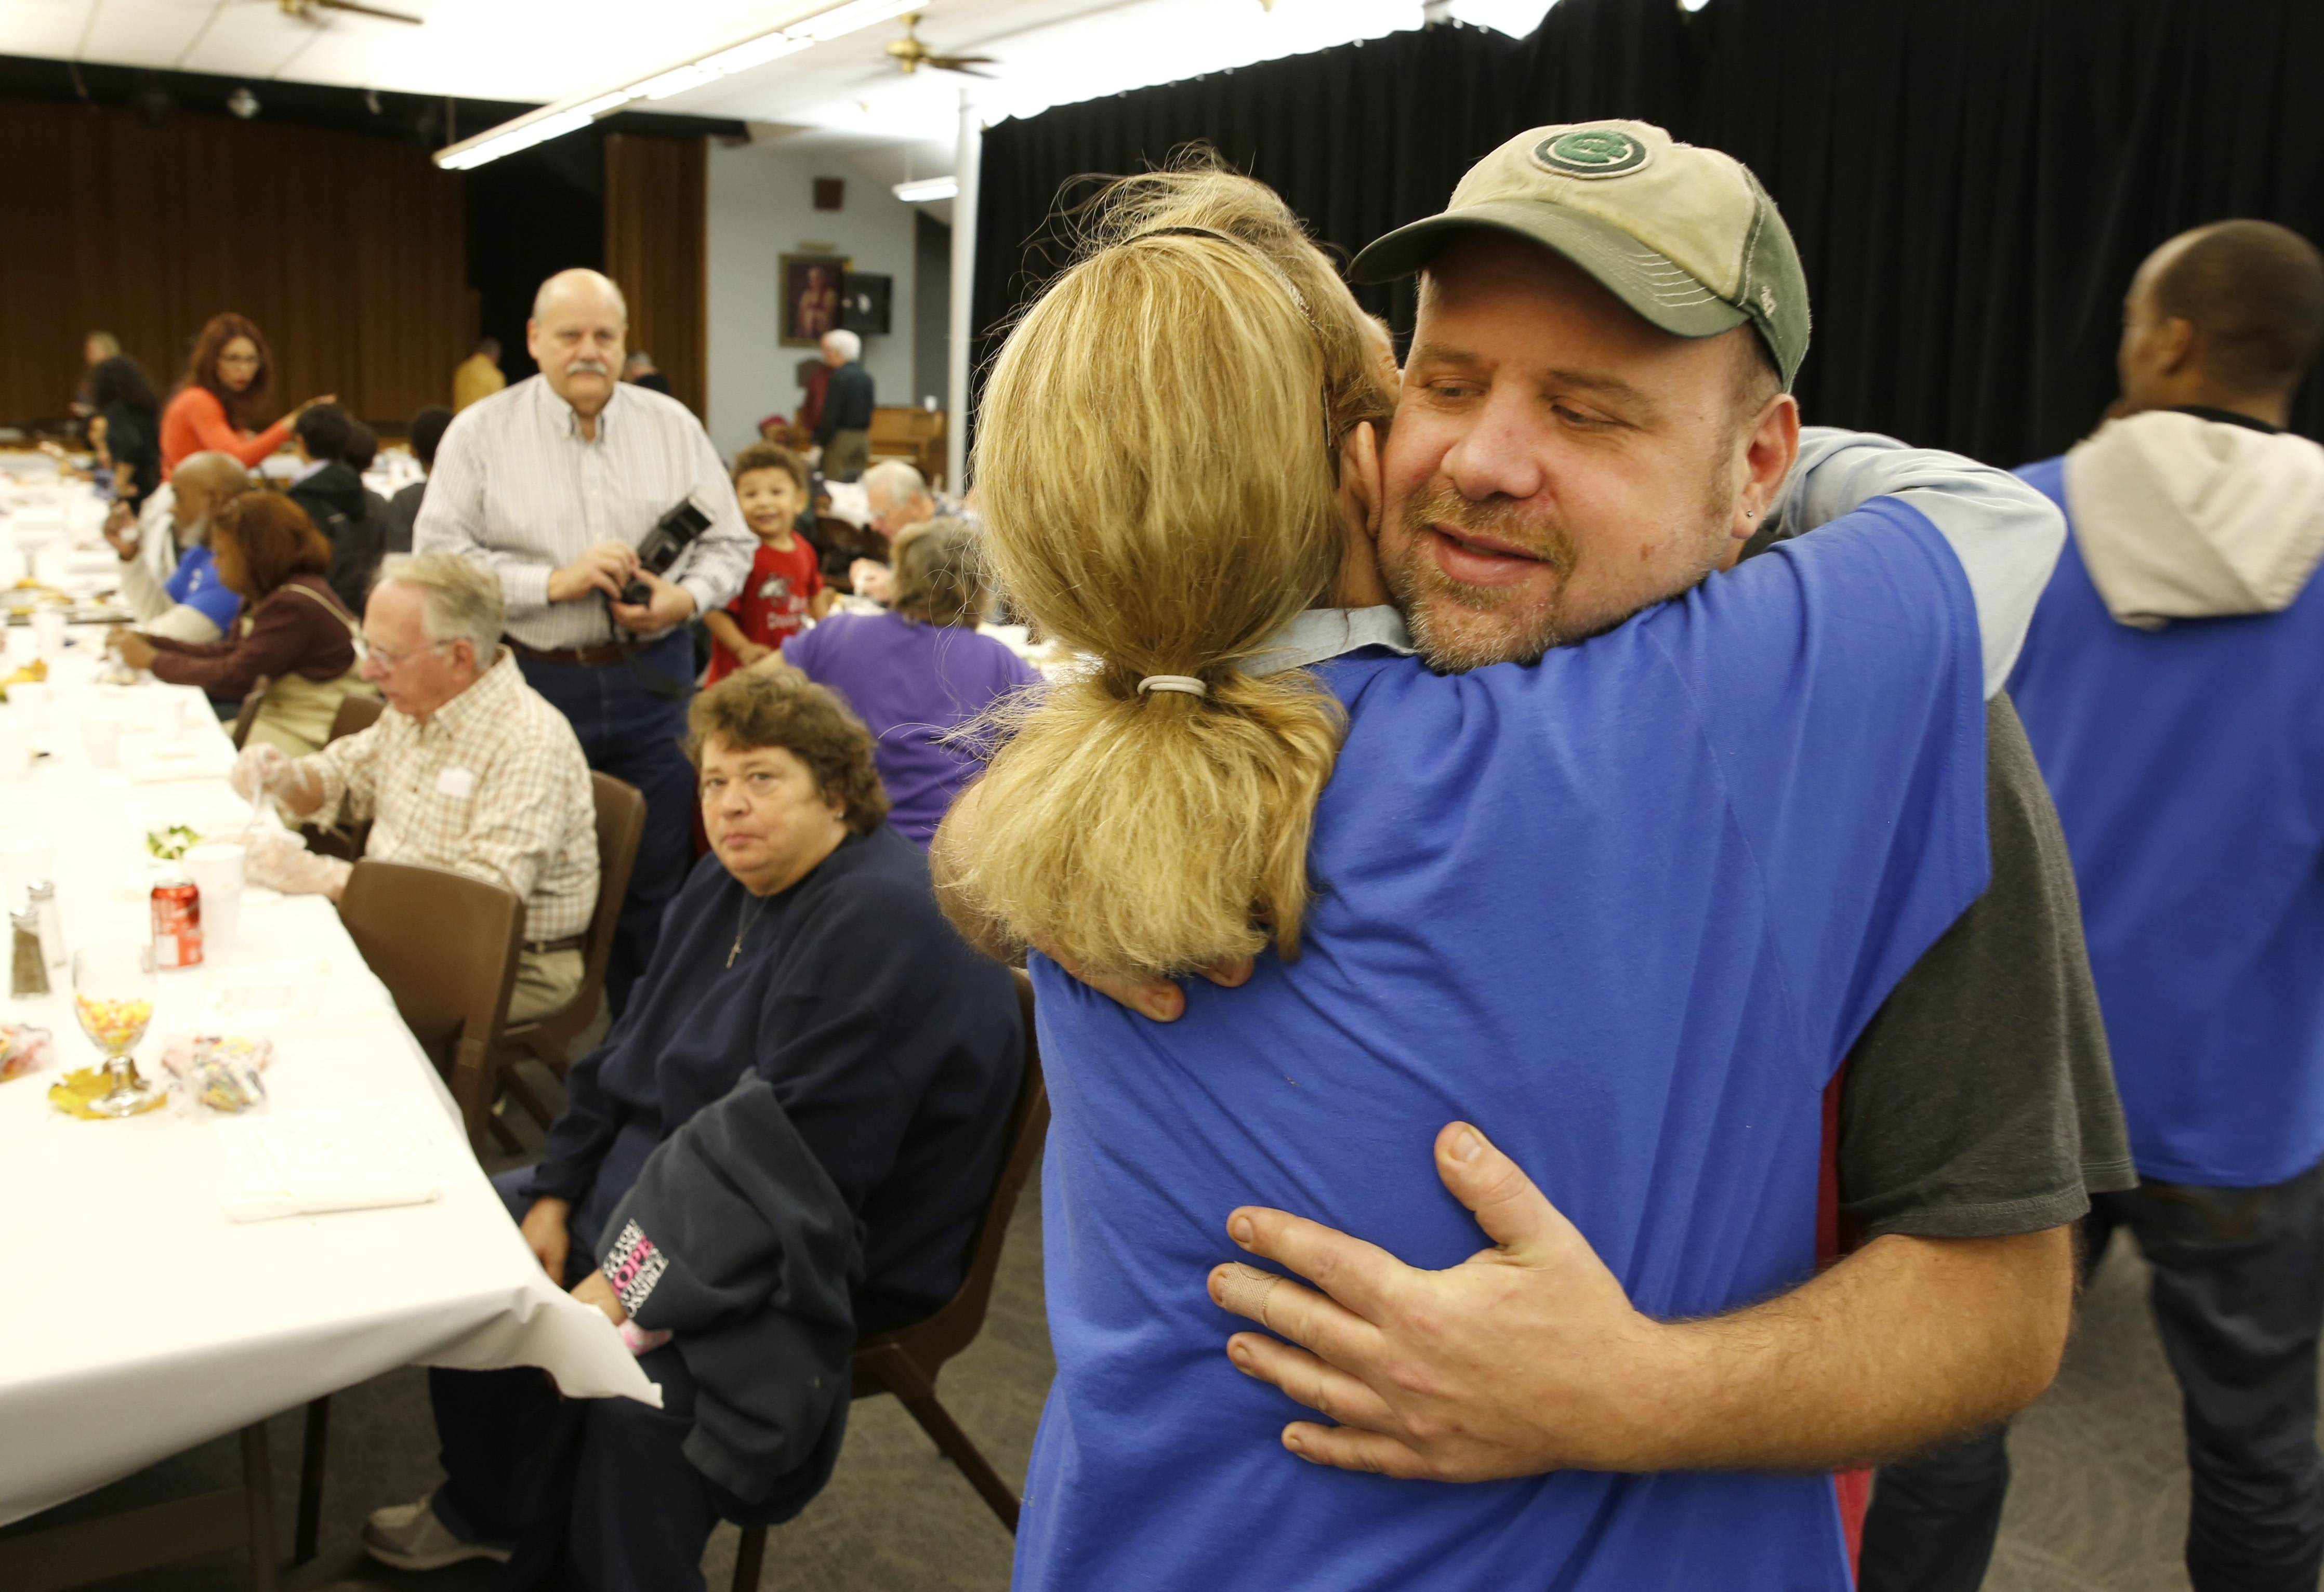 Jeff Turner, owner of In The Neighborhood Deli in Elgin, gets a hug of thanks from Theresa Boswell of Elgin, during a Thanksgiving Day celebration for the community at the First United Methodist Church in Elgin. Turner organized the event and Boswell was one of numerous community volunteers.